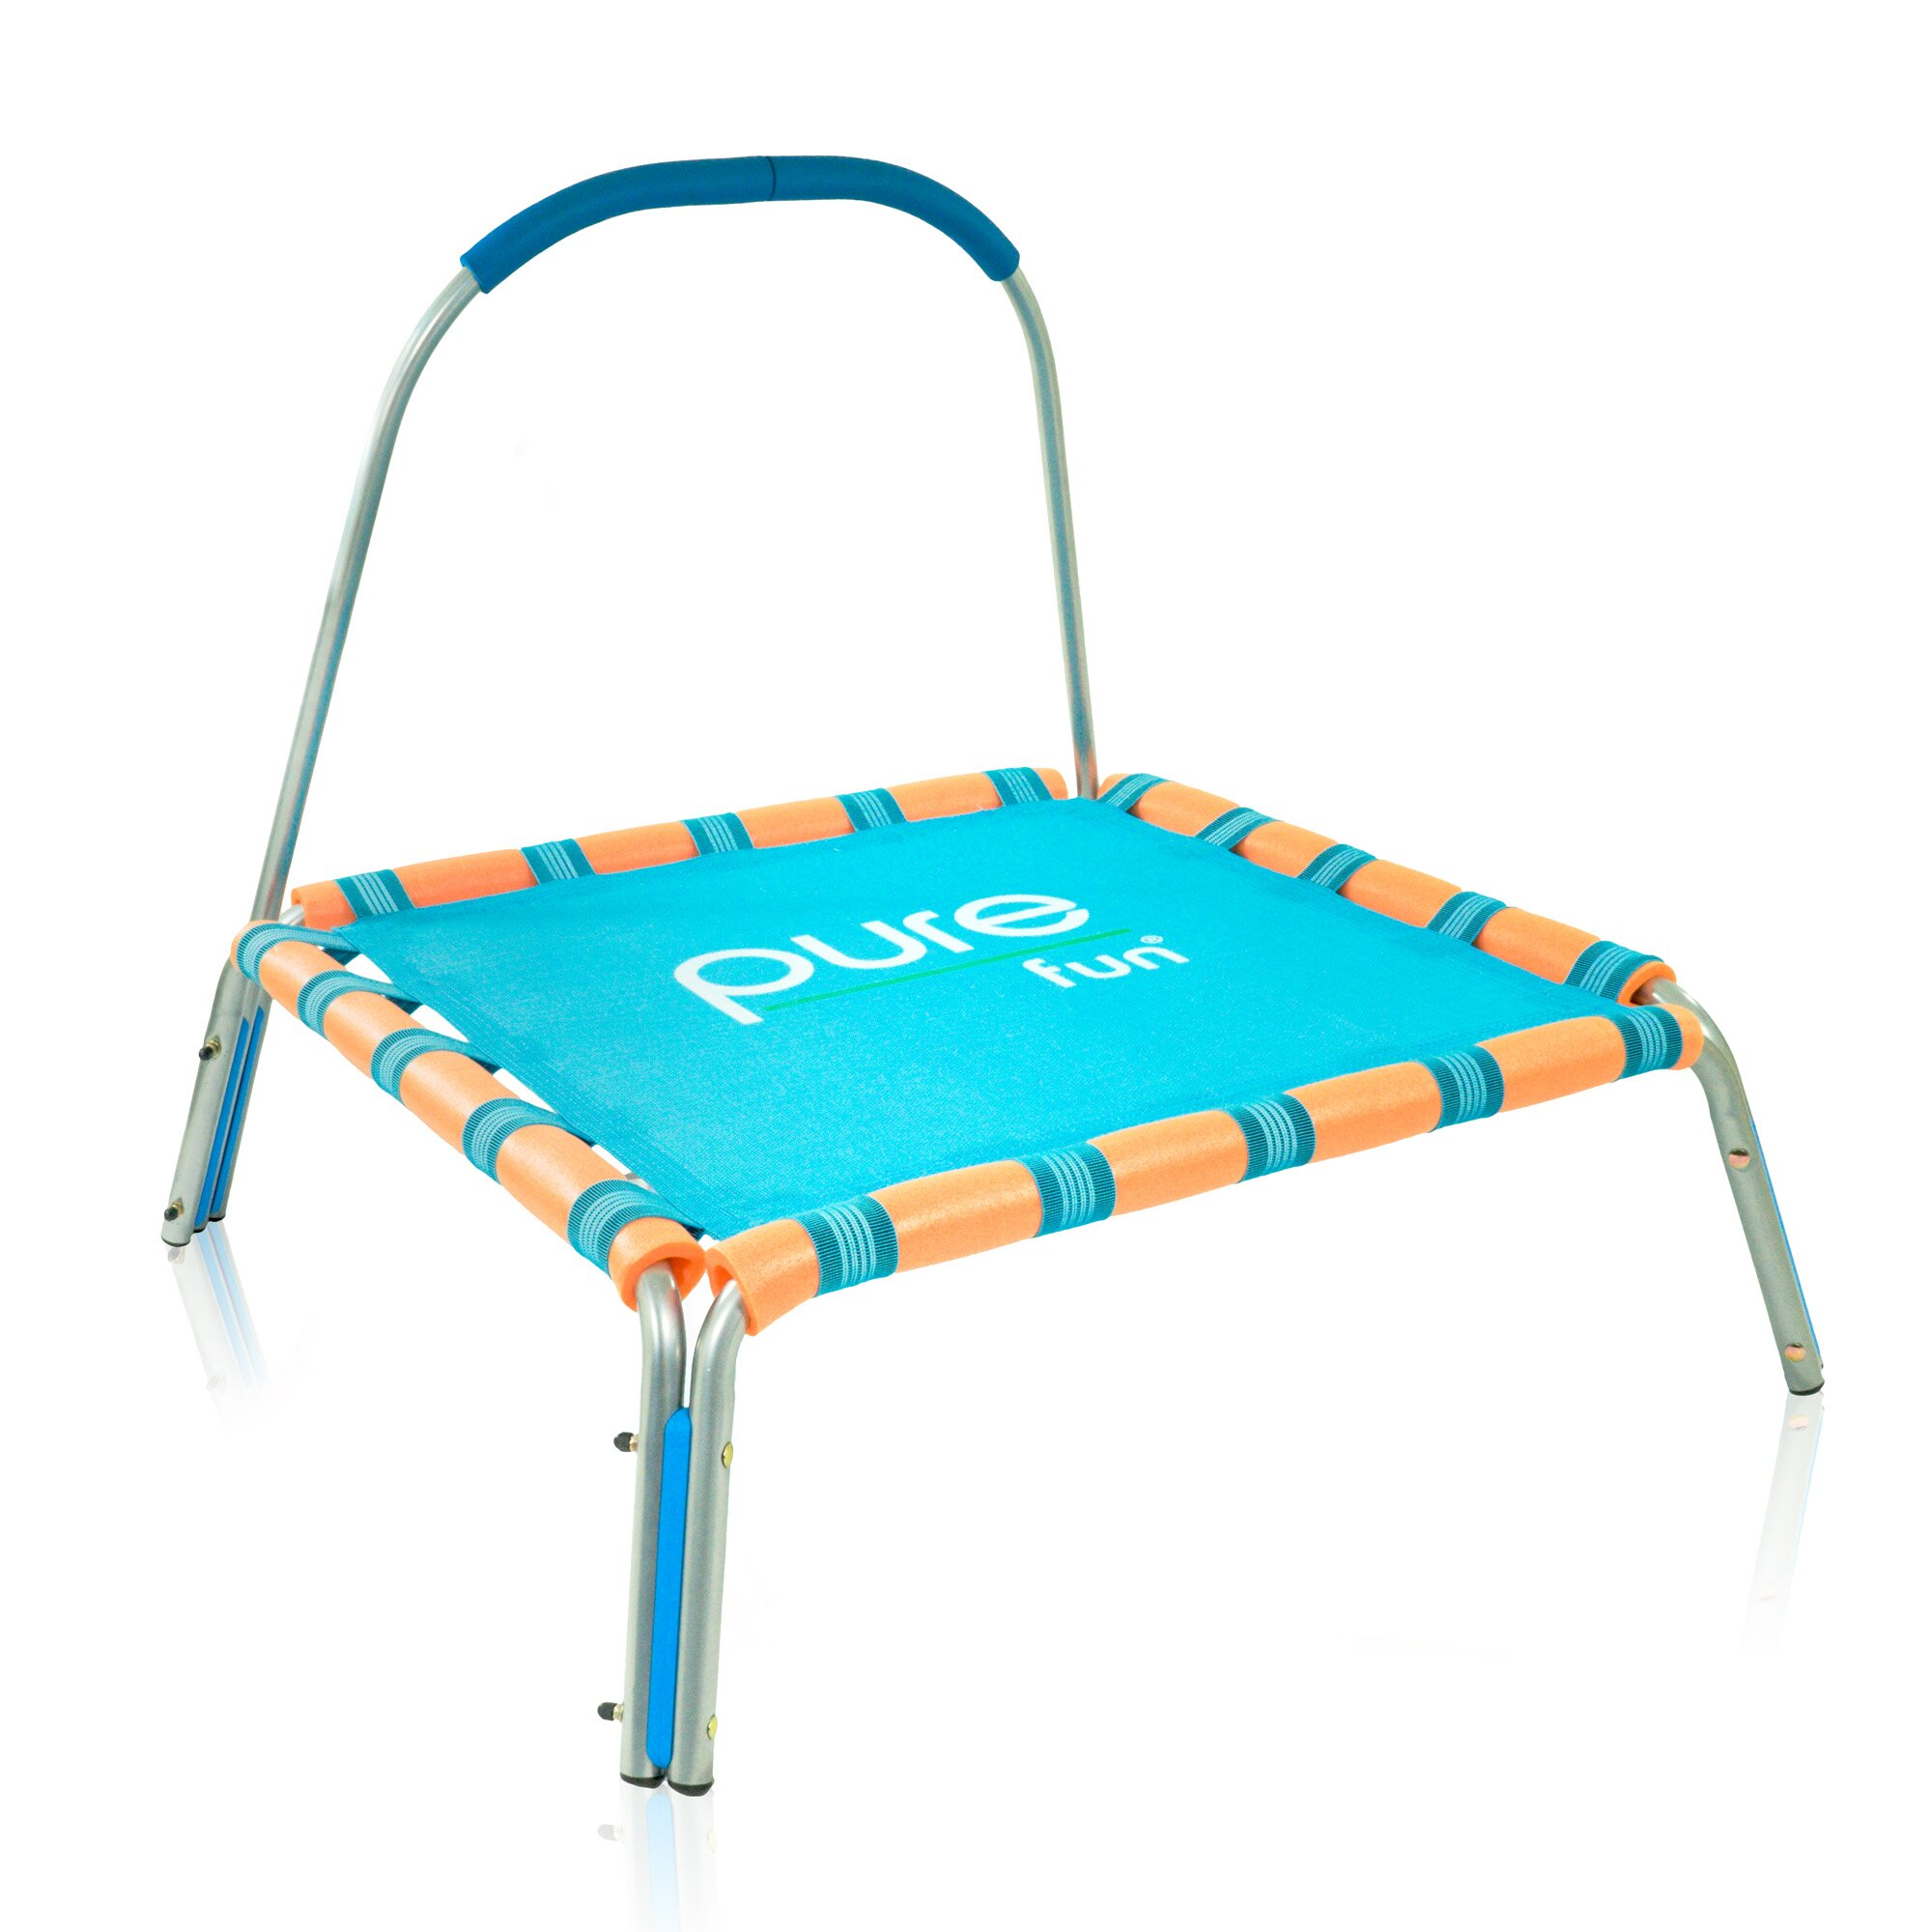 "Pure Fun Kid's 37.8"" Jumper Trampoline & Reviews"